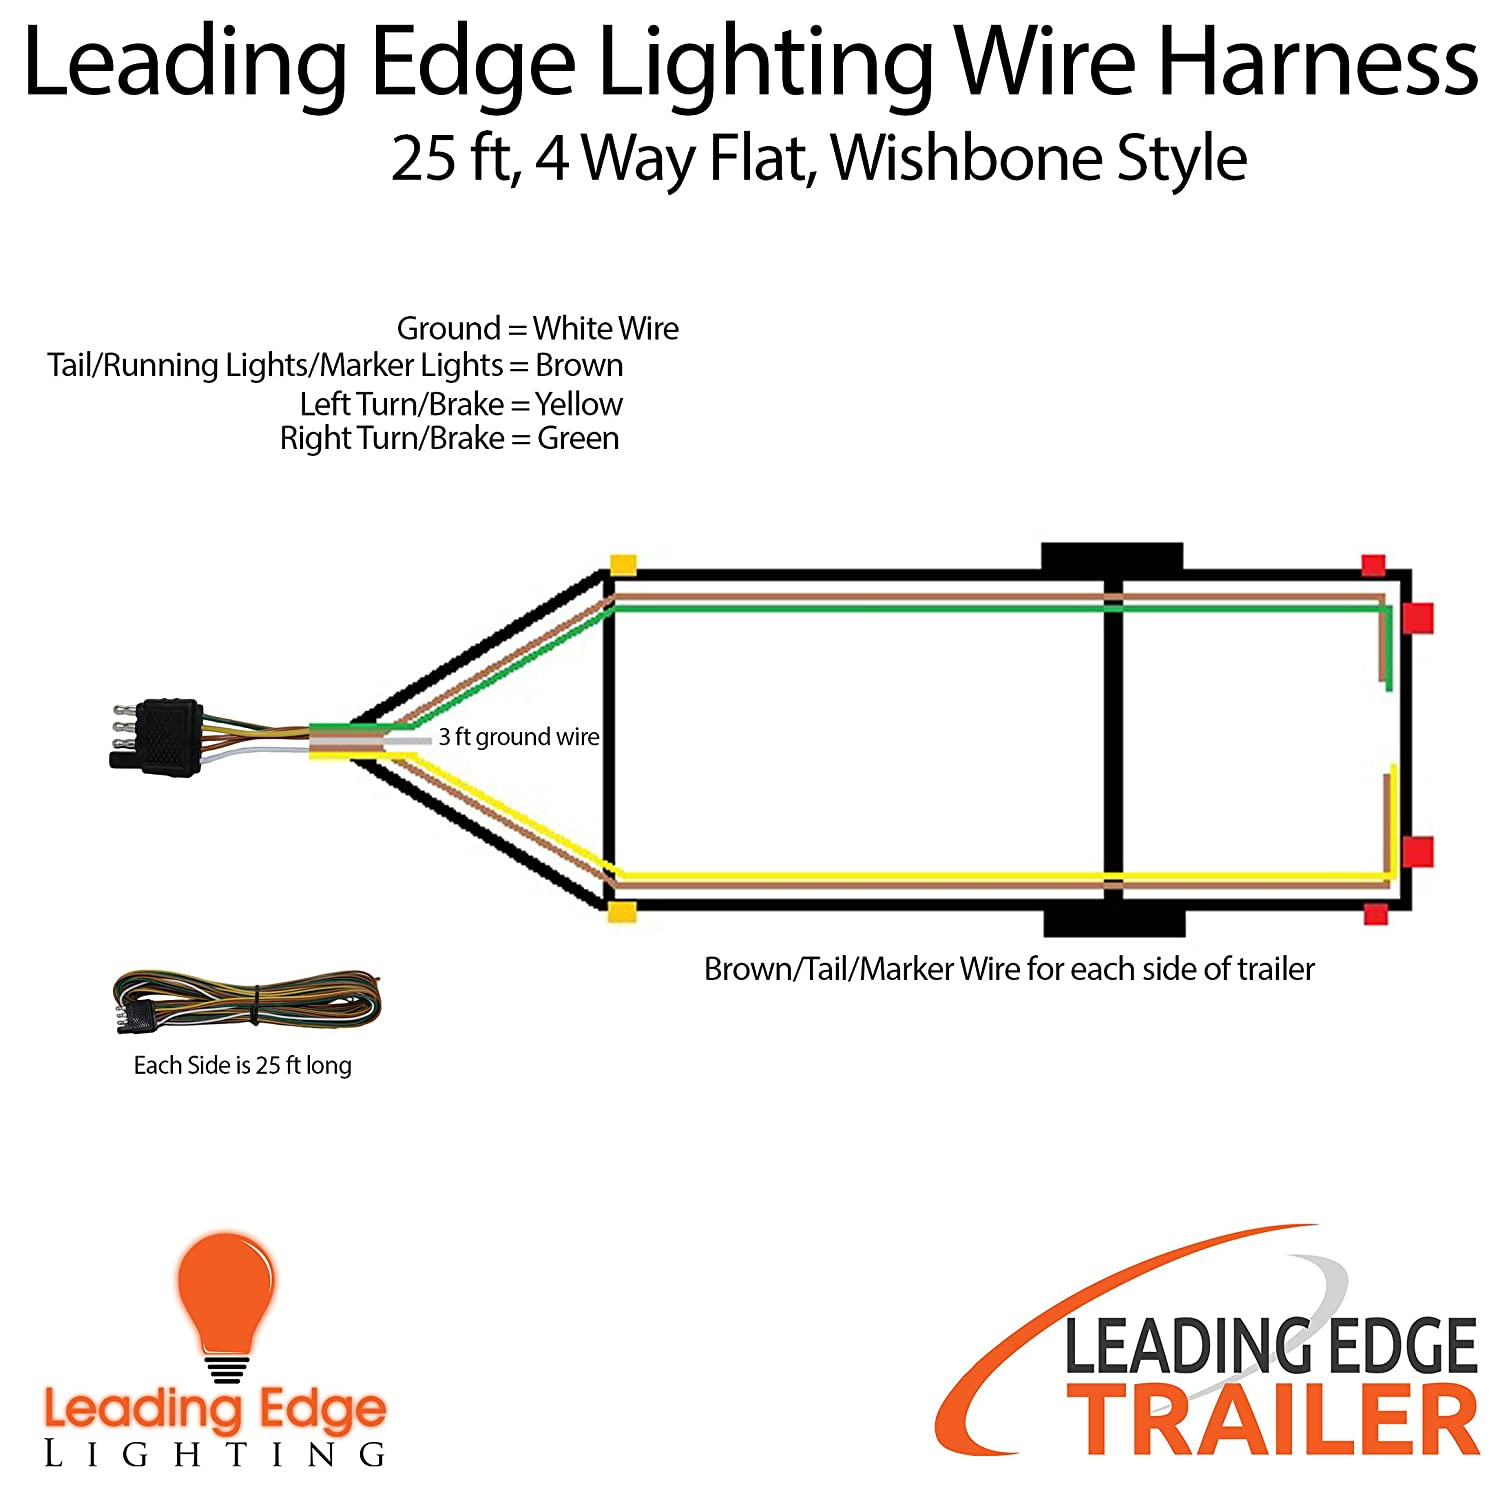 amazon com wishbone style trailer wiring harness with 4 flat rh amazon com wiring harness for trailer diagram wiring harness for trailers 2005 rav-4